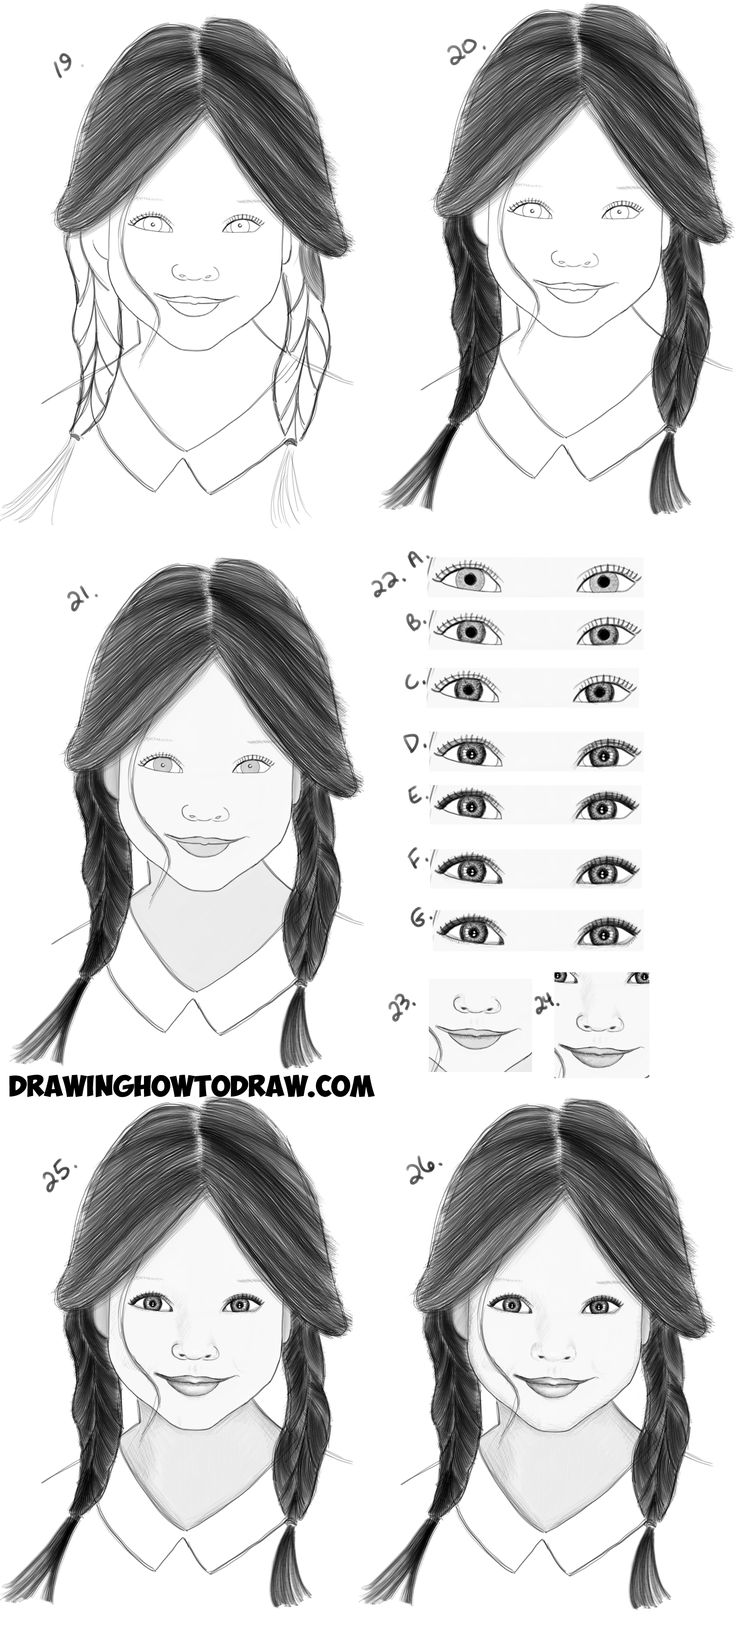 how to draw girls best hd cute chibi girl drawings easy vector drawing girls how to draw